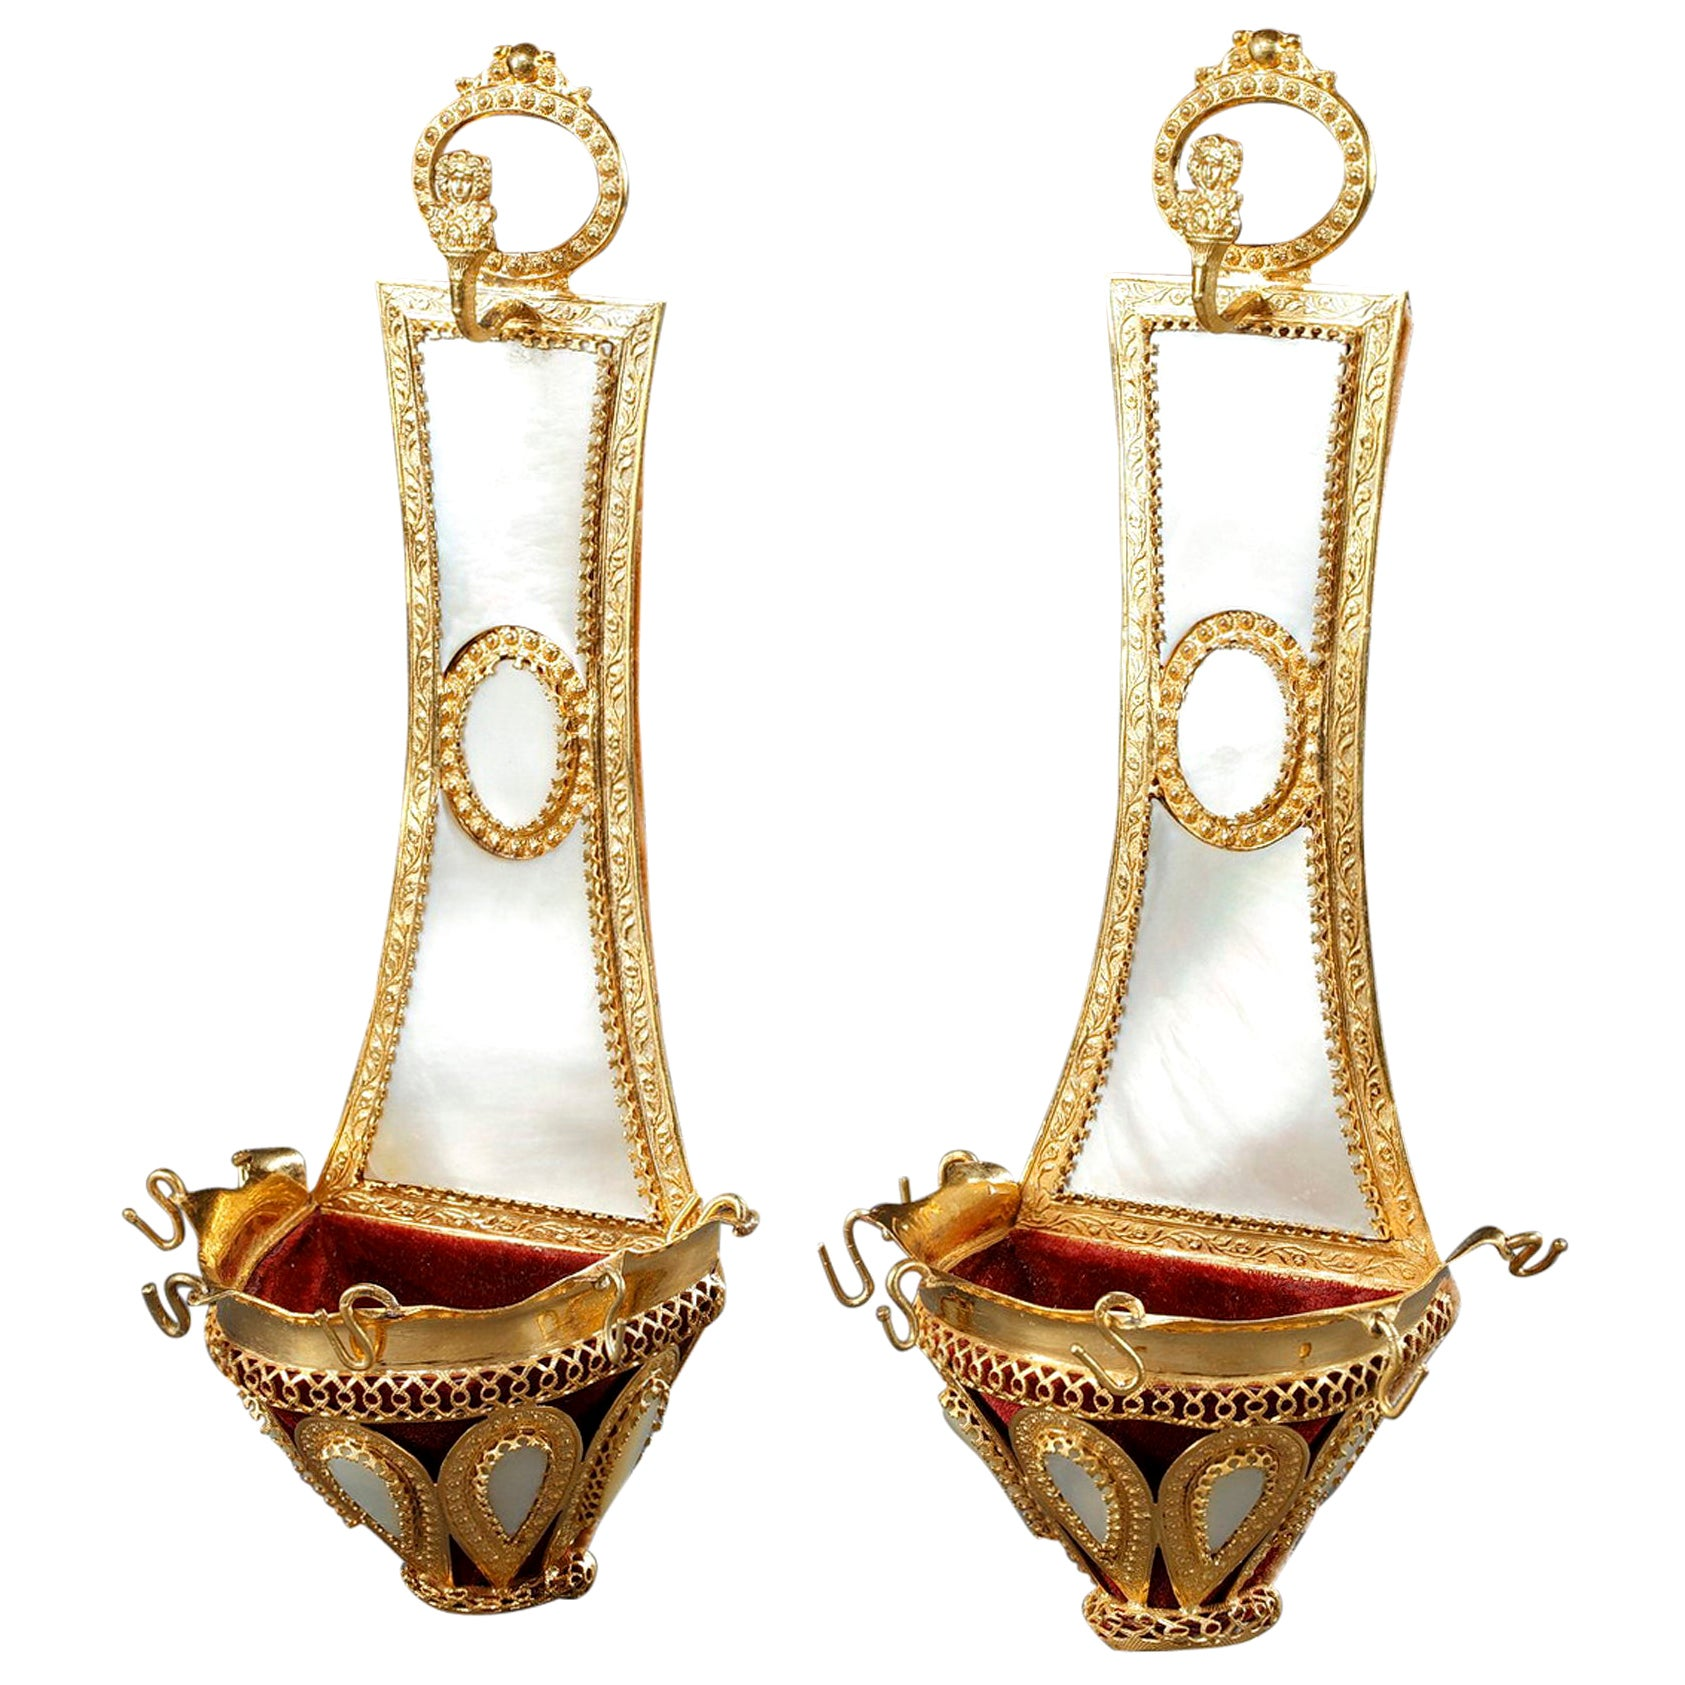 Pair of Ring Holders in Mother of Pearl and Gilt Bronze, Palais Royal Work